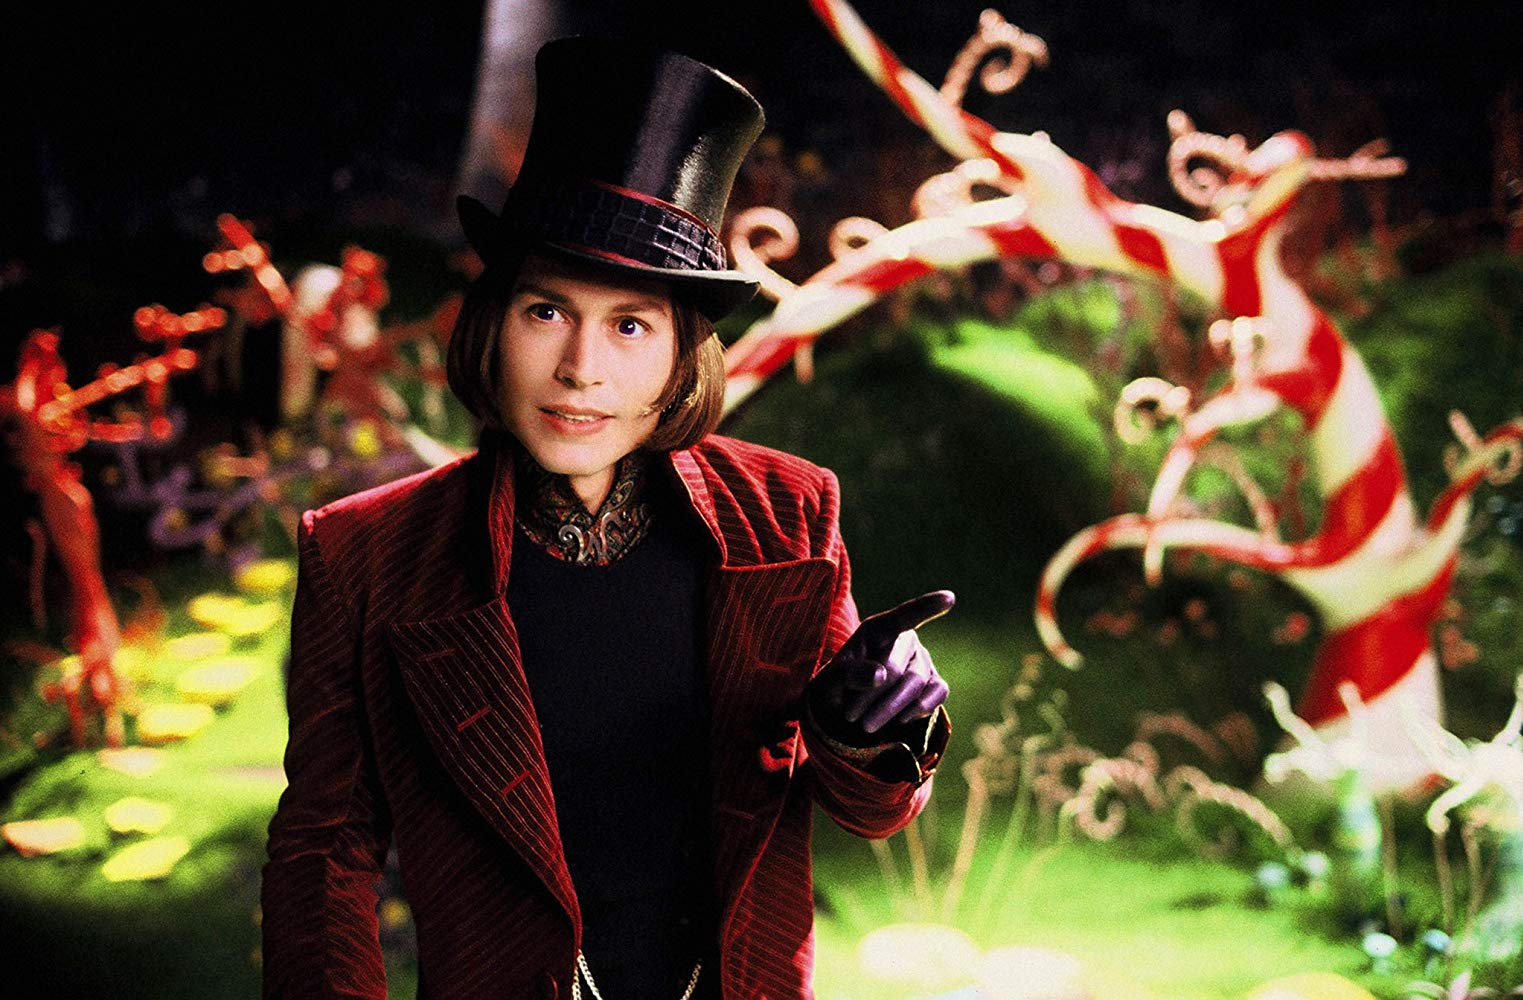 Johnny Depp as Willy Wonka in Charlie and the Chocolate Factory (2005)